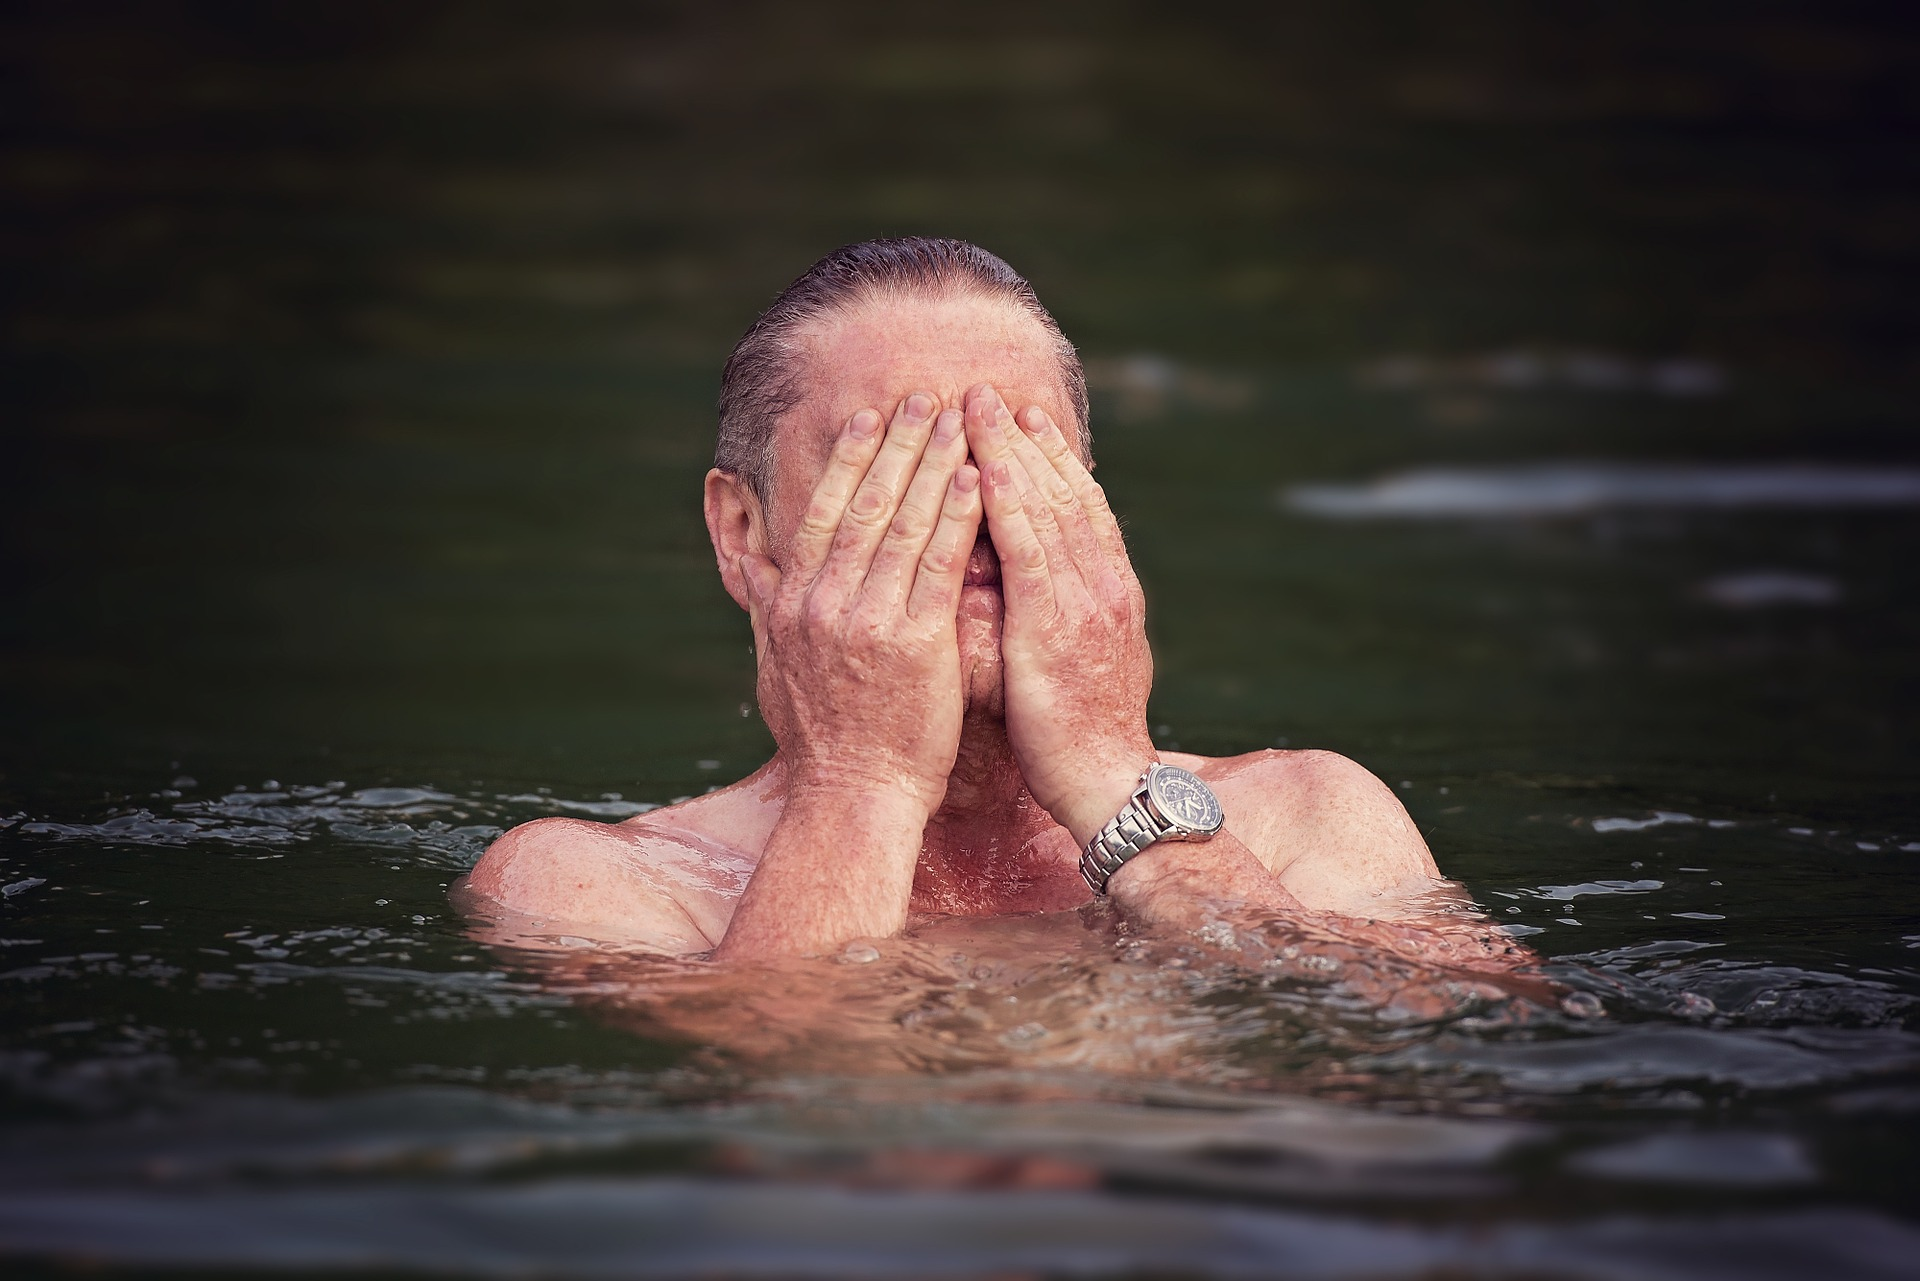 Man cooling down in the water